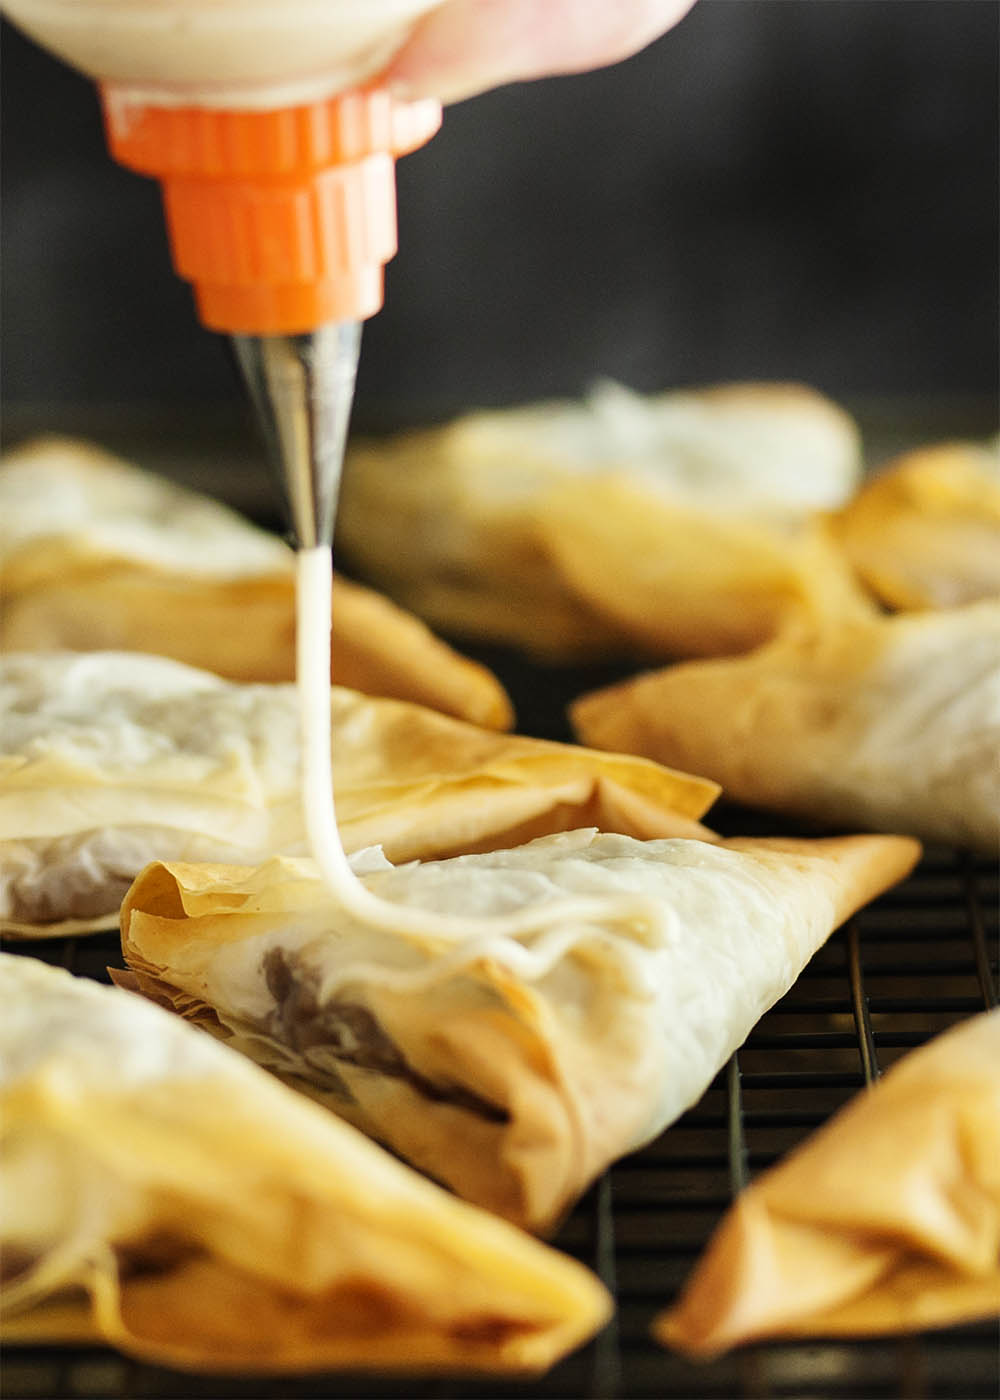 Spiced Honey Apple Turnovers - Layers of flaky fillo dough are wrapped around a filling of apples and honey all flavored with warm spices. Add a drizzle of honey icing on top and you have an apple turnover that will have you wanting more. | justalittlebitofbacon.com